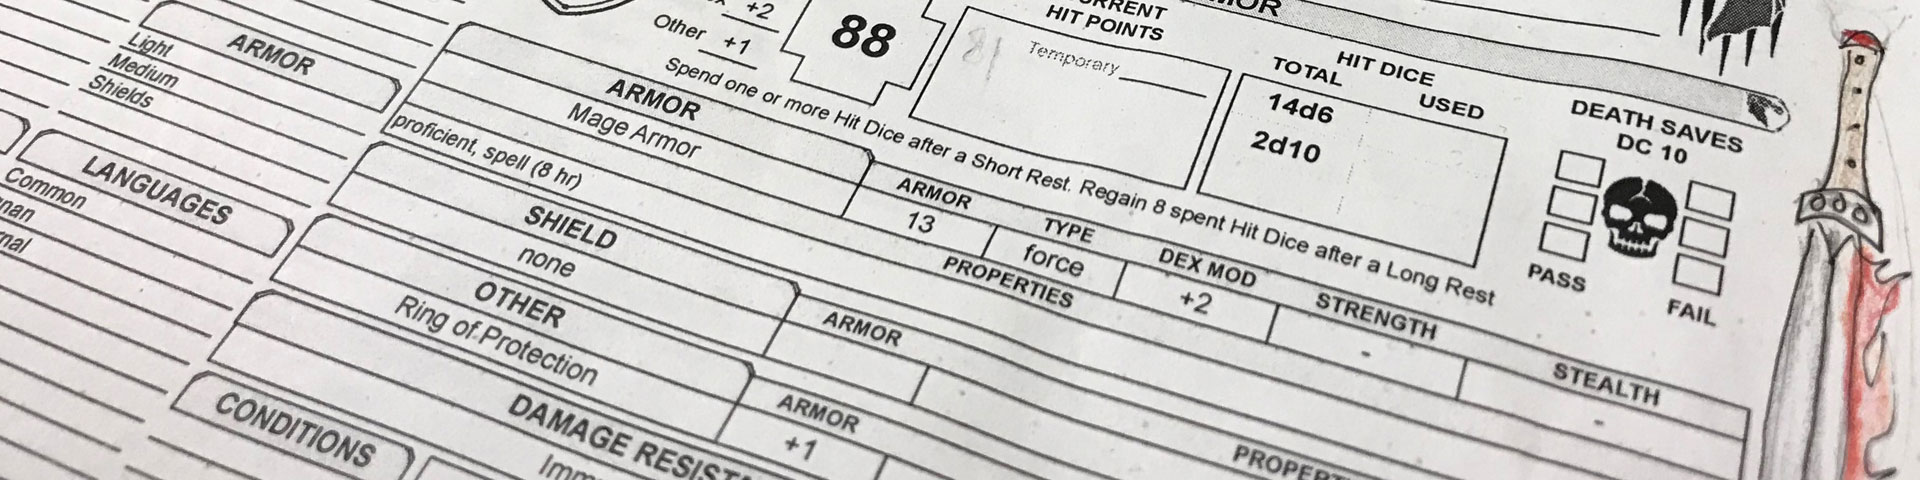 A close-up of a Dungeons & Dragons character sheet. A doodle of a sword, wreathed in flame, appears to the right.